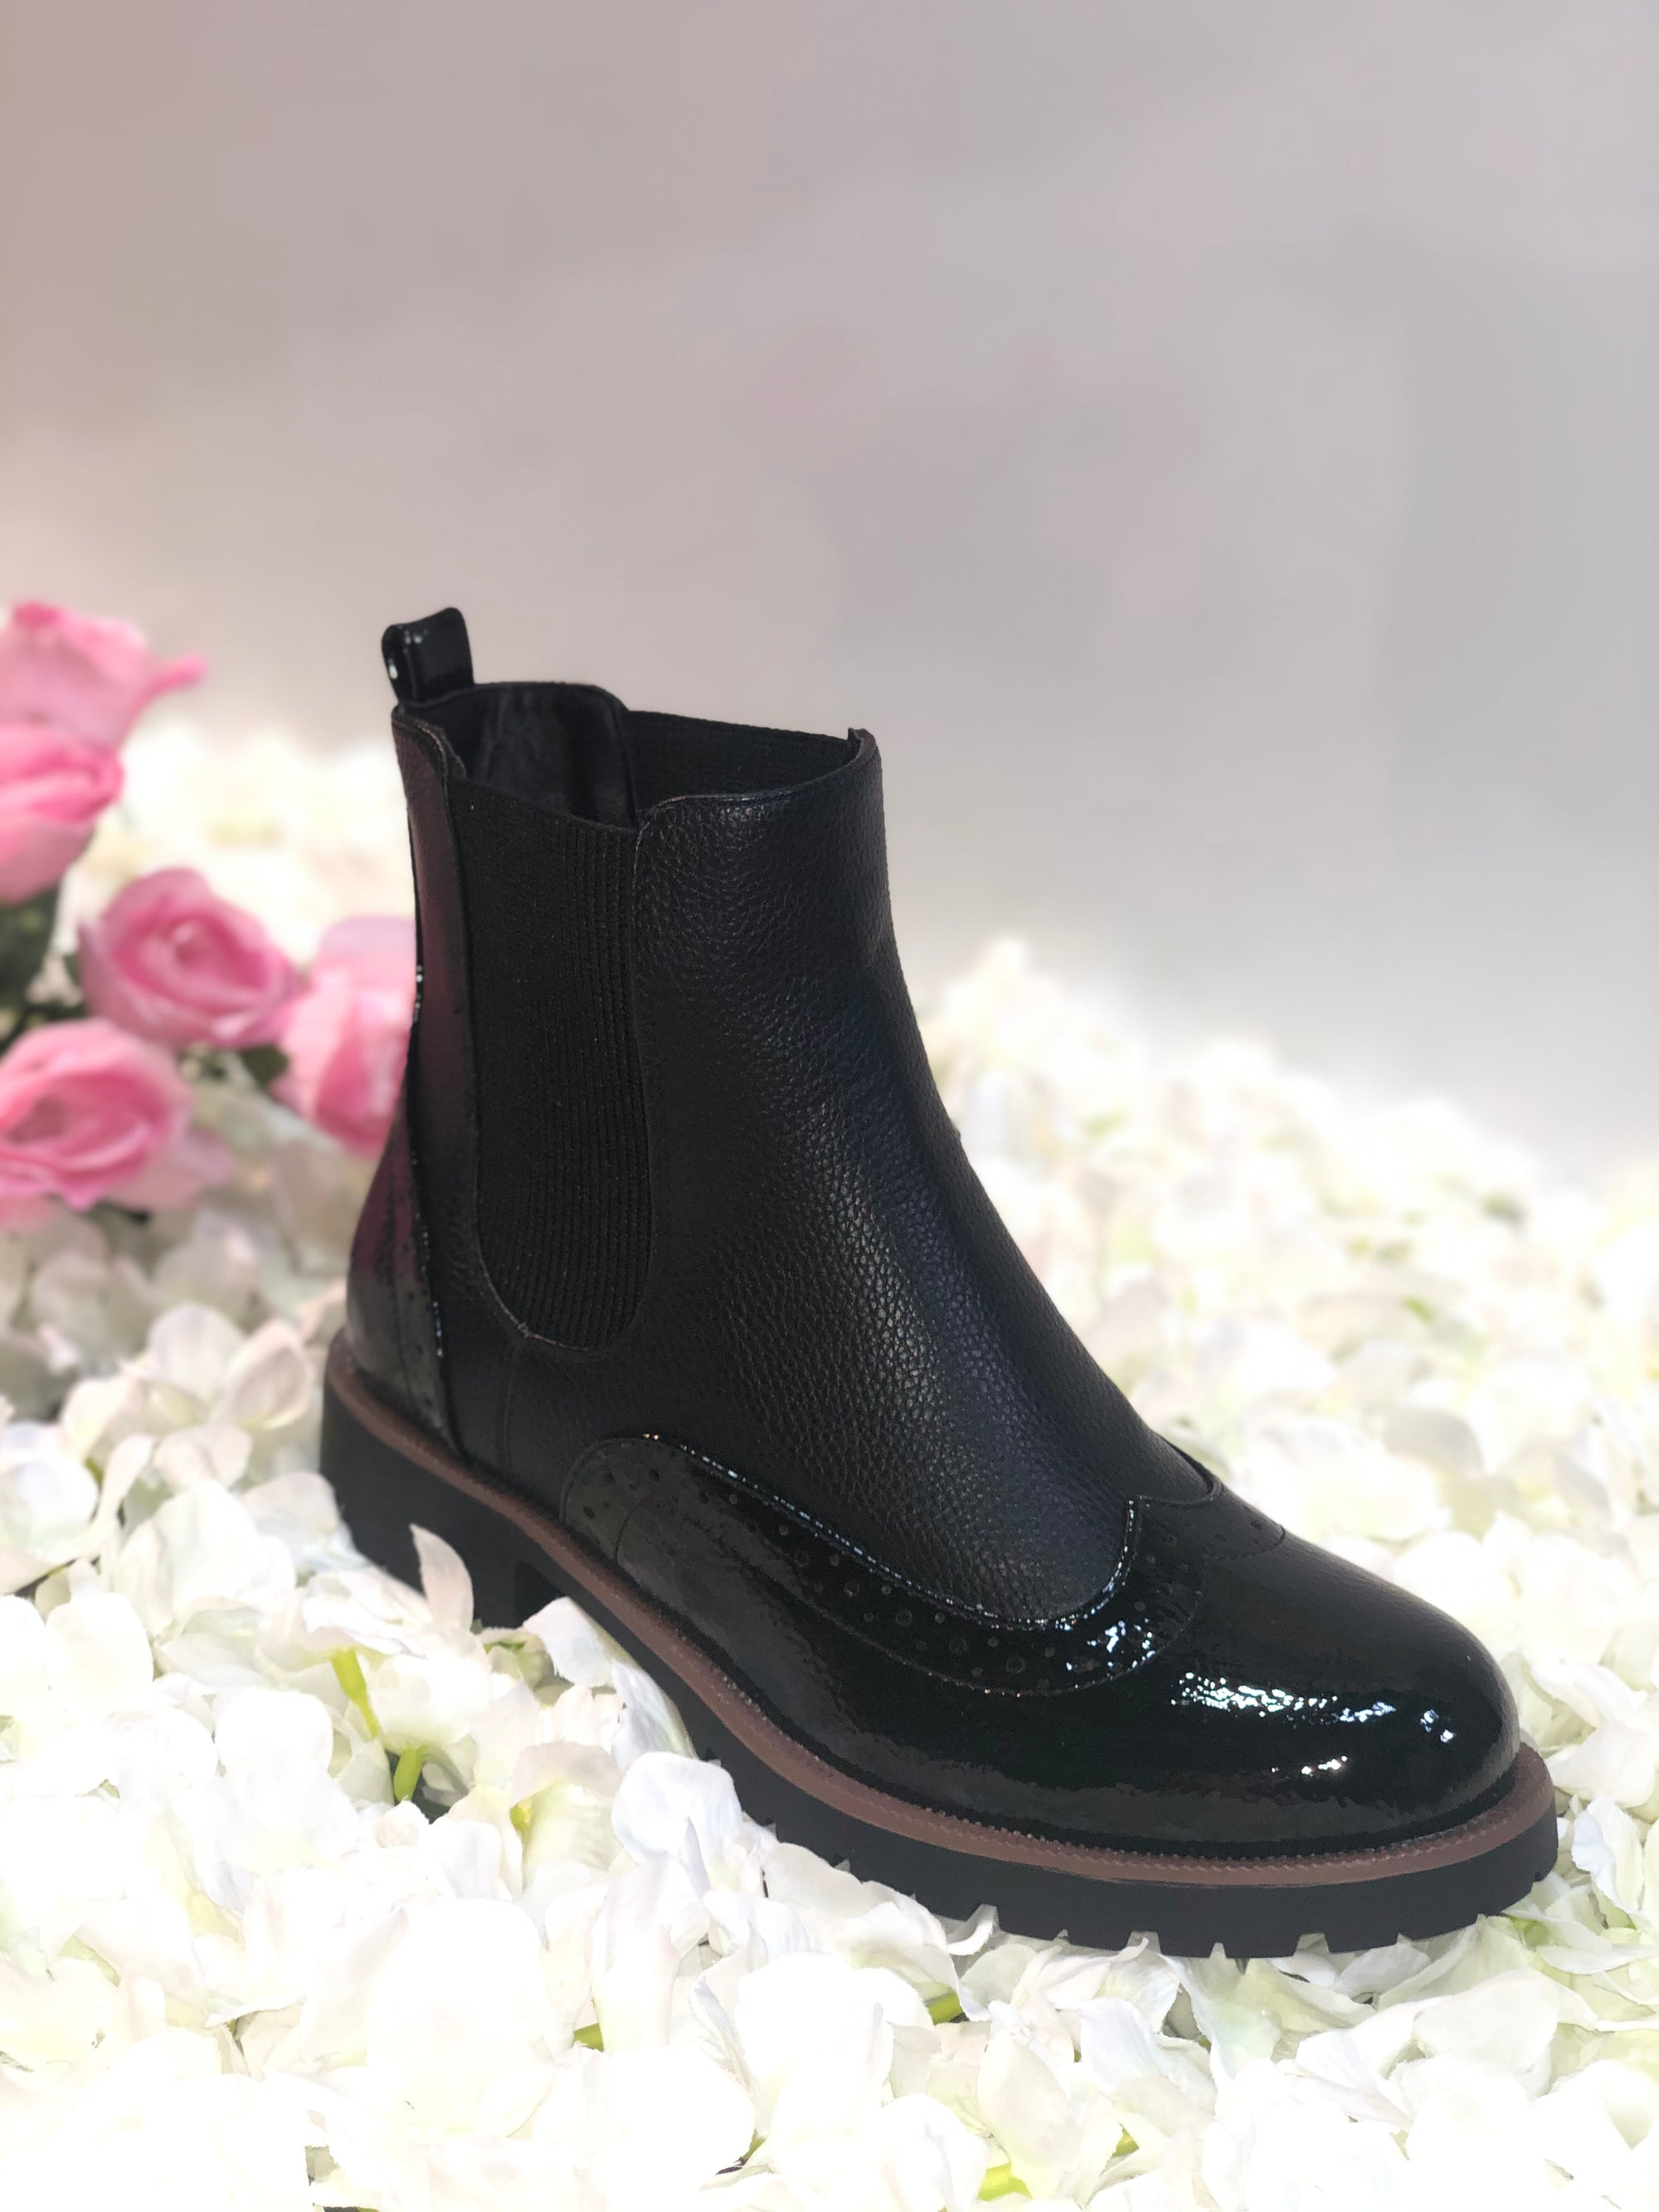 BLACK NAPPA & PATENT BROGUE STYLE FAUX LEATHER CHELSEA BOOT